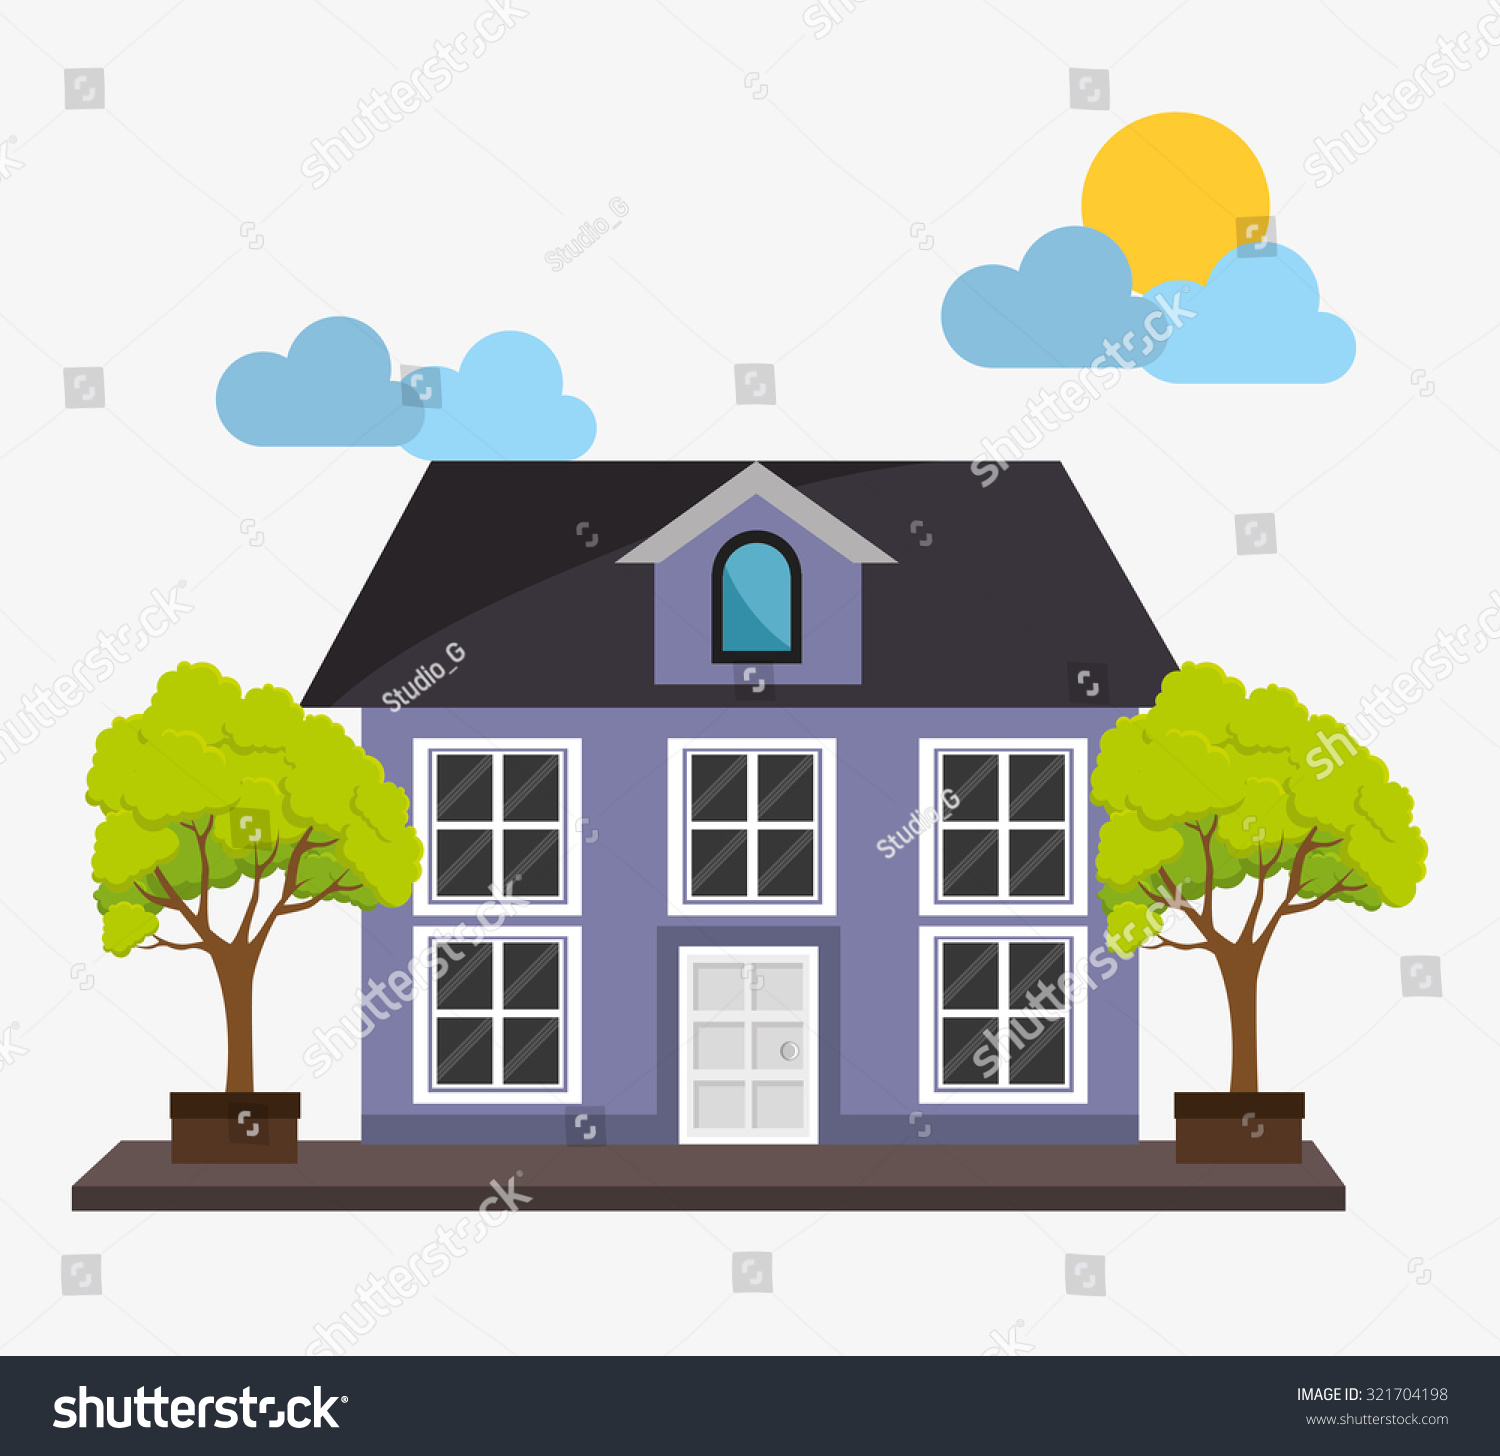 Real Estate Home Design Vector Illustration Stock Vector 321704198 ...